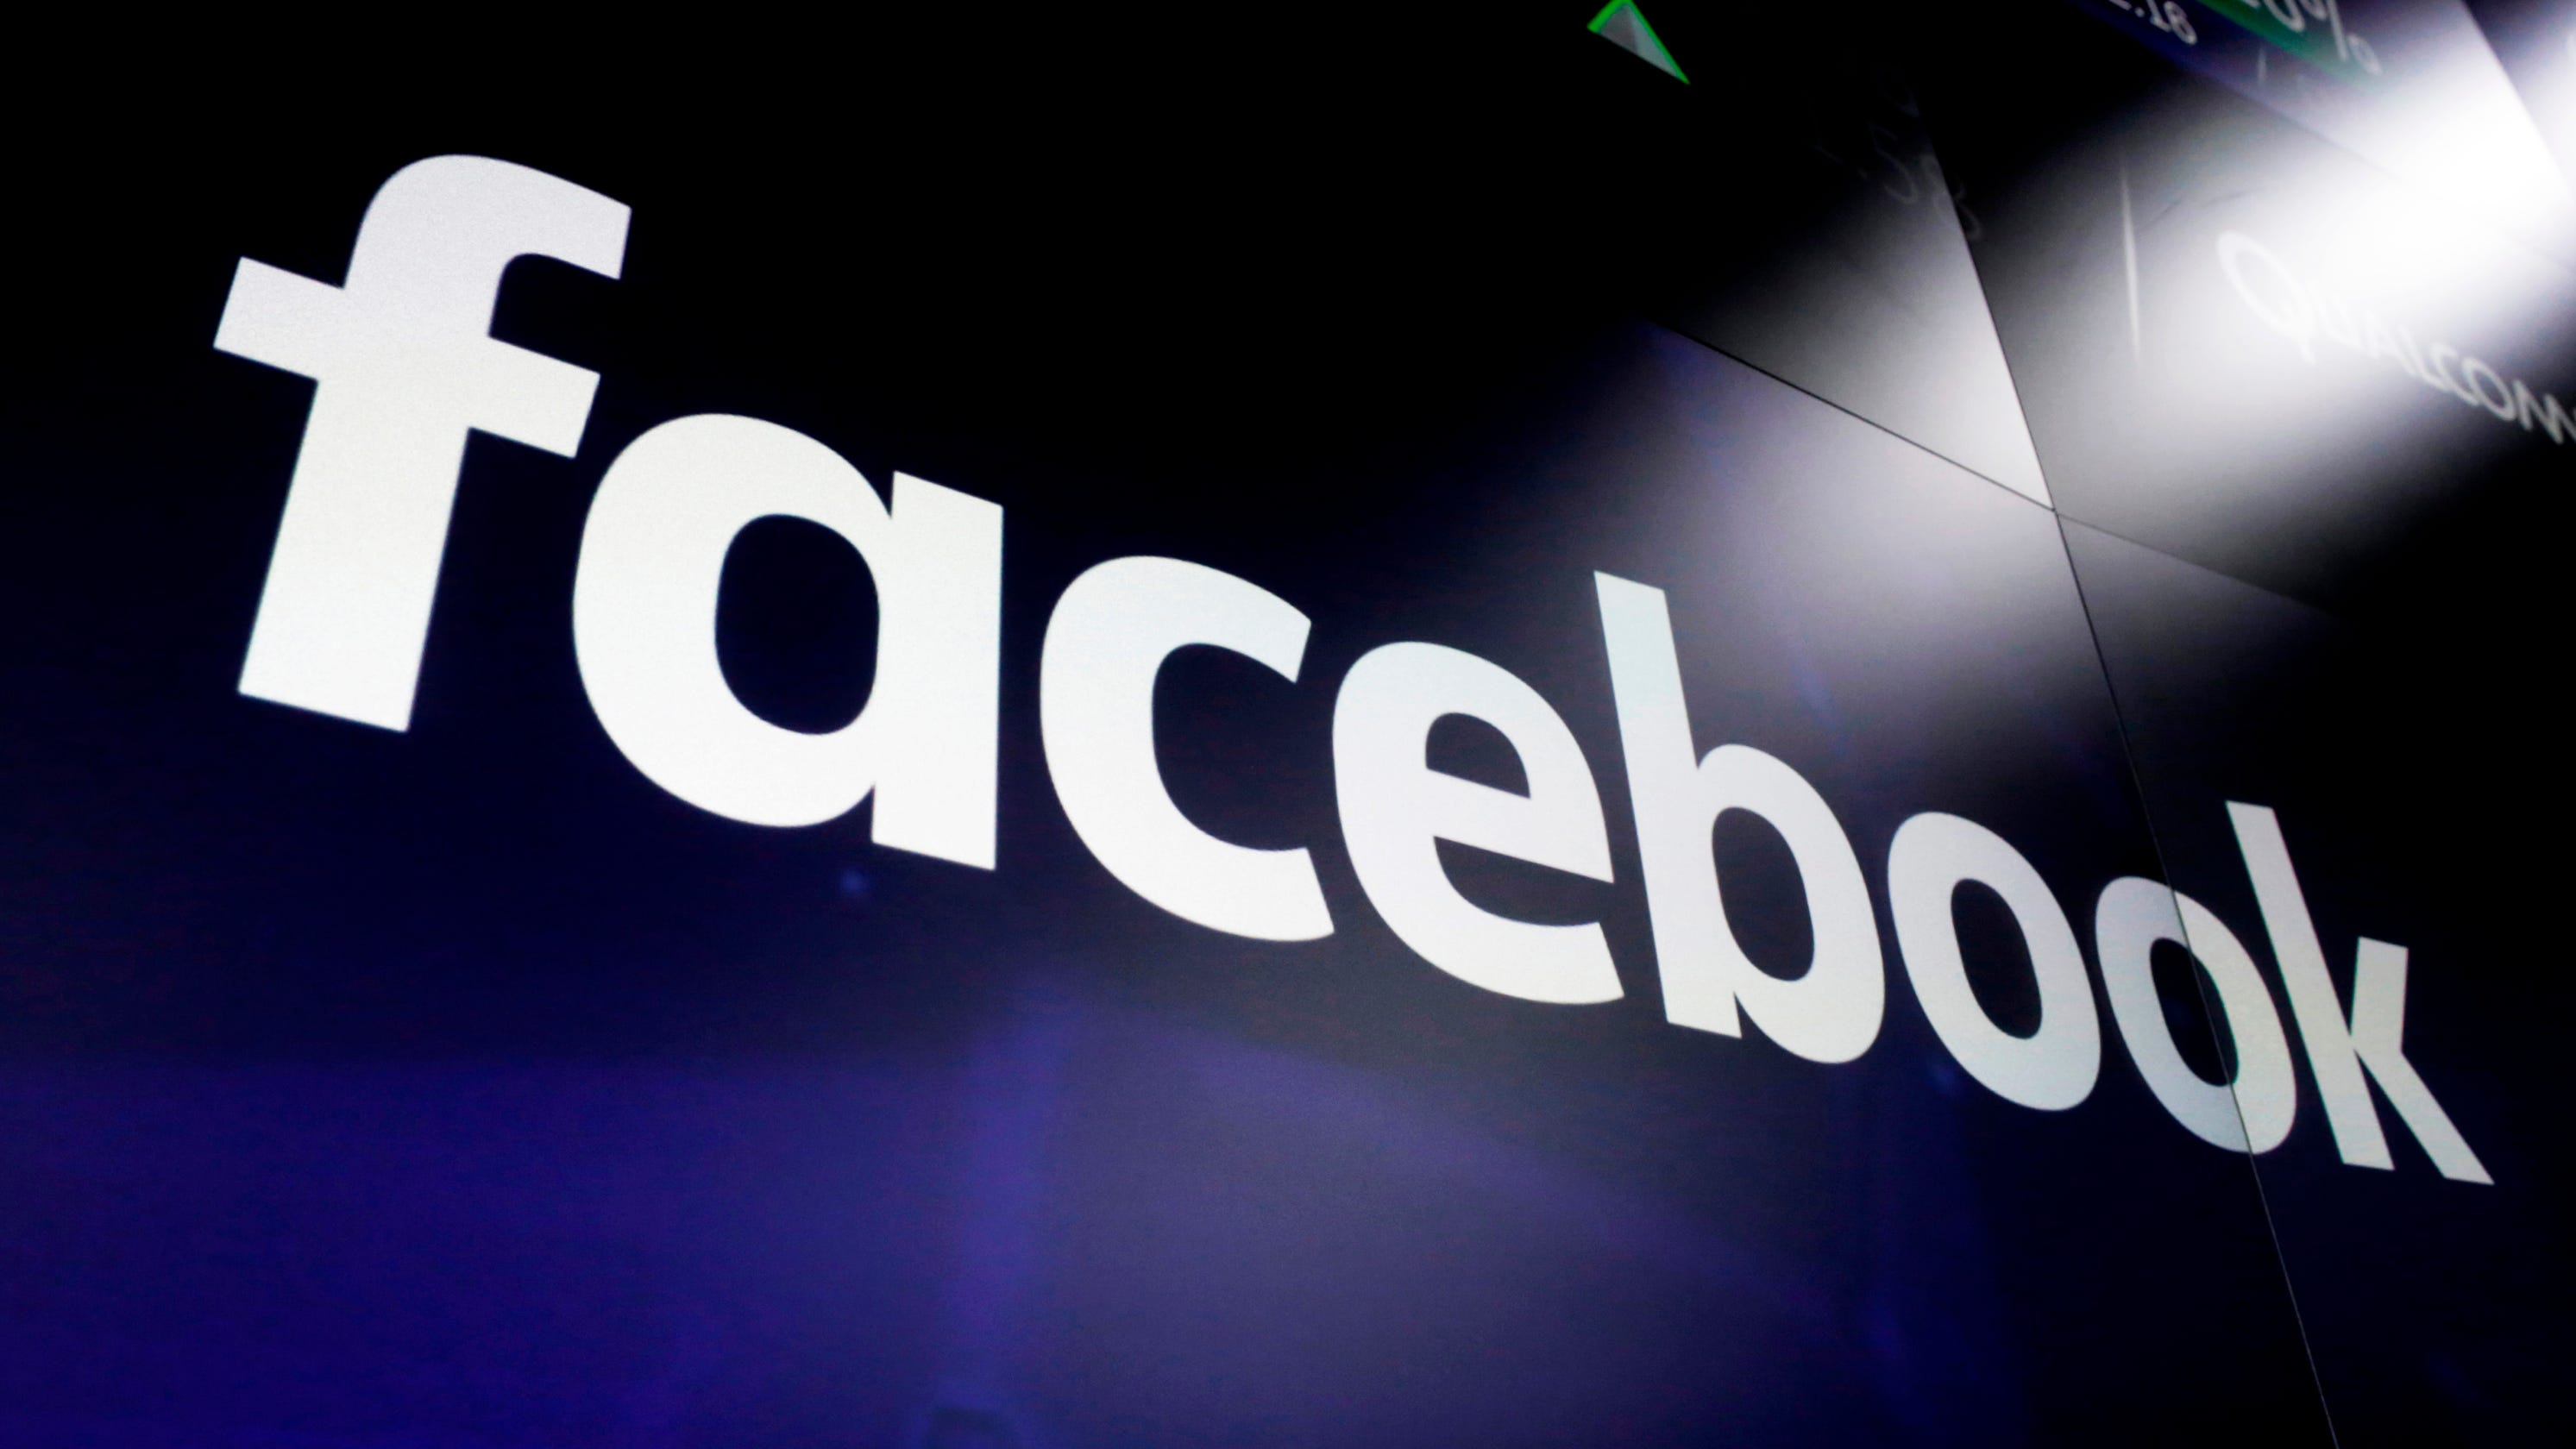 Logged out of Facebook? You're not alone and Facebook blames configuration change for logouts